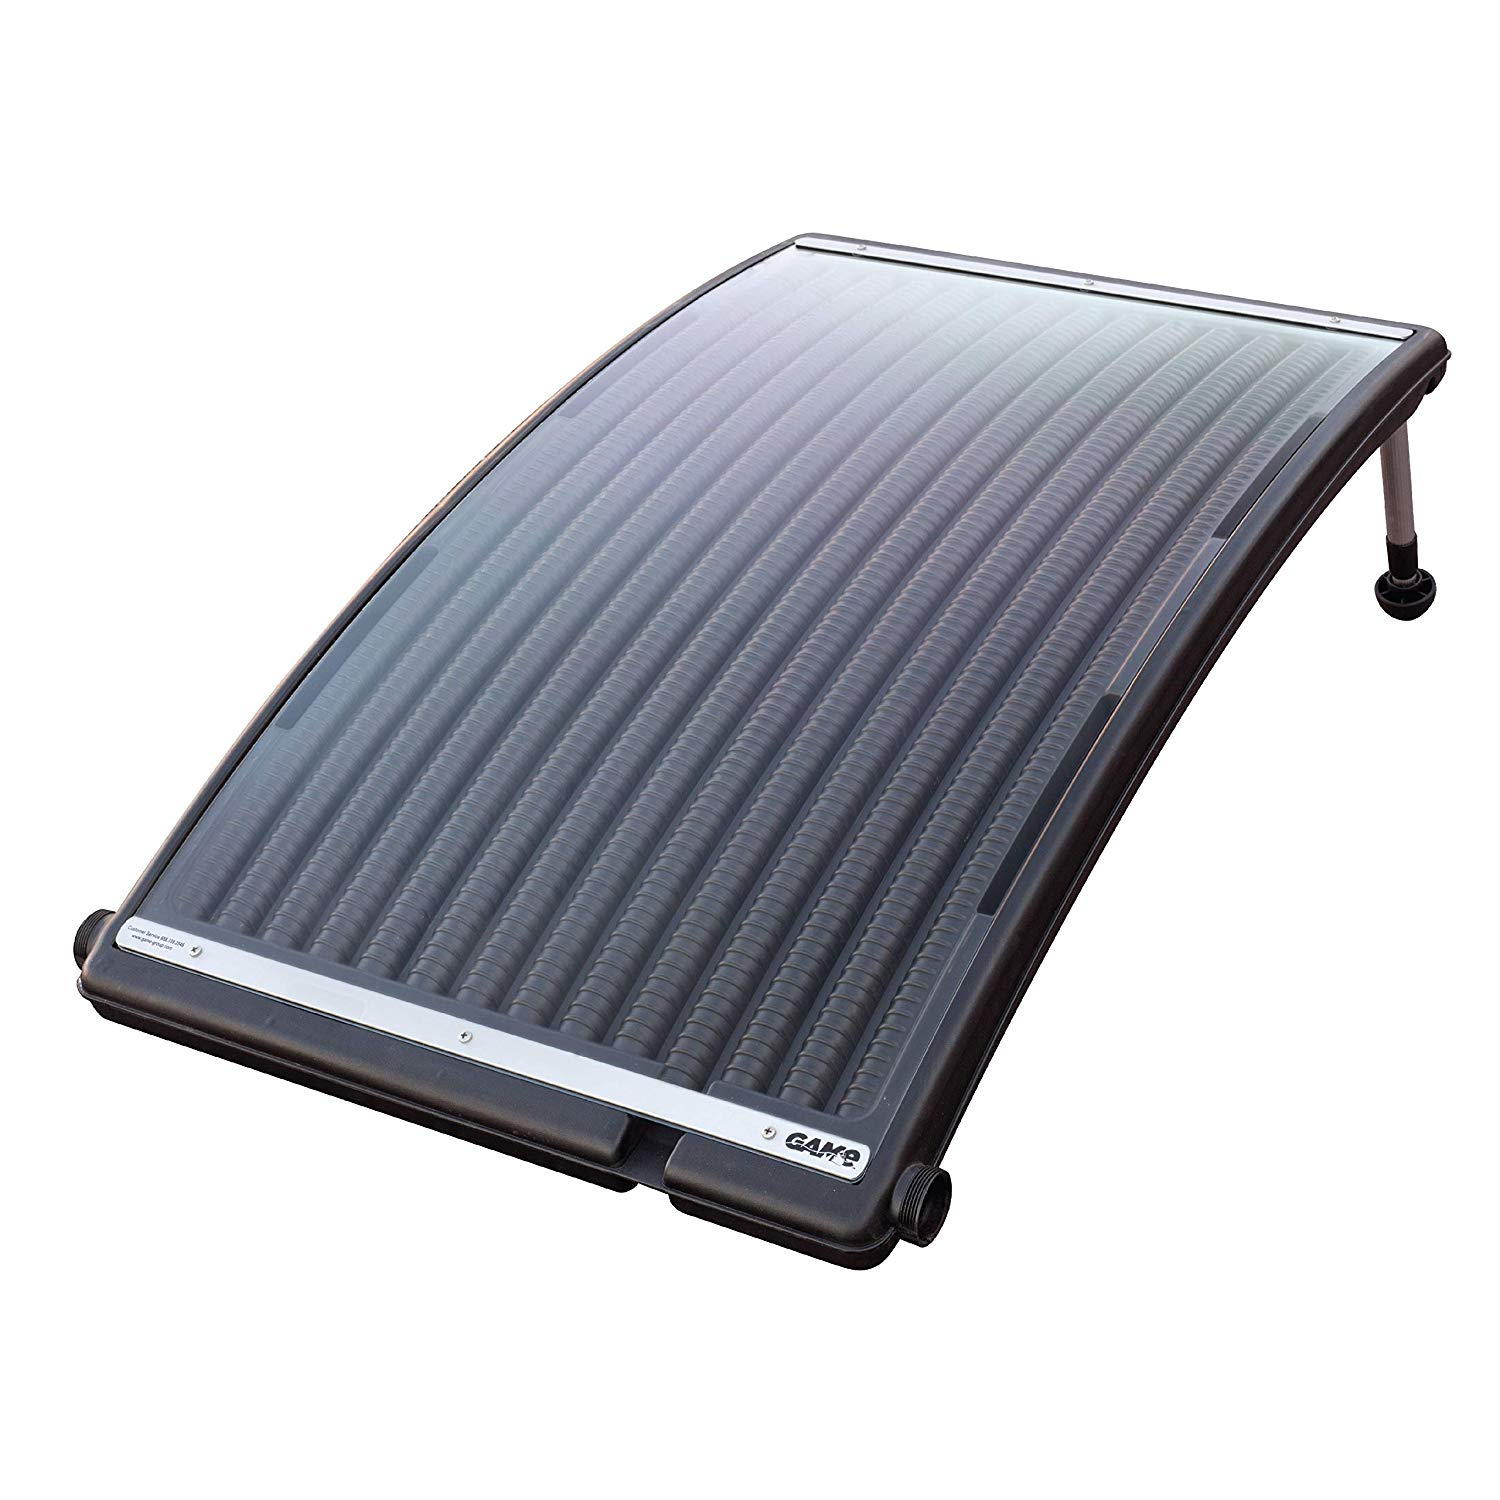 Game 4721 SolarPro Curve Solar Pool Heater